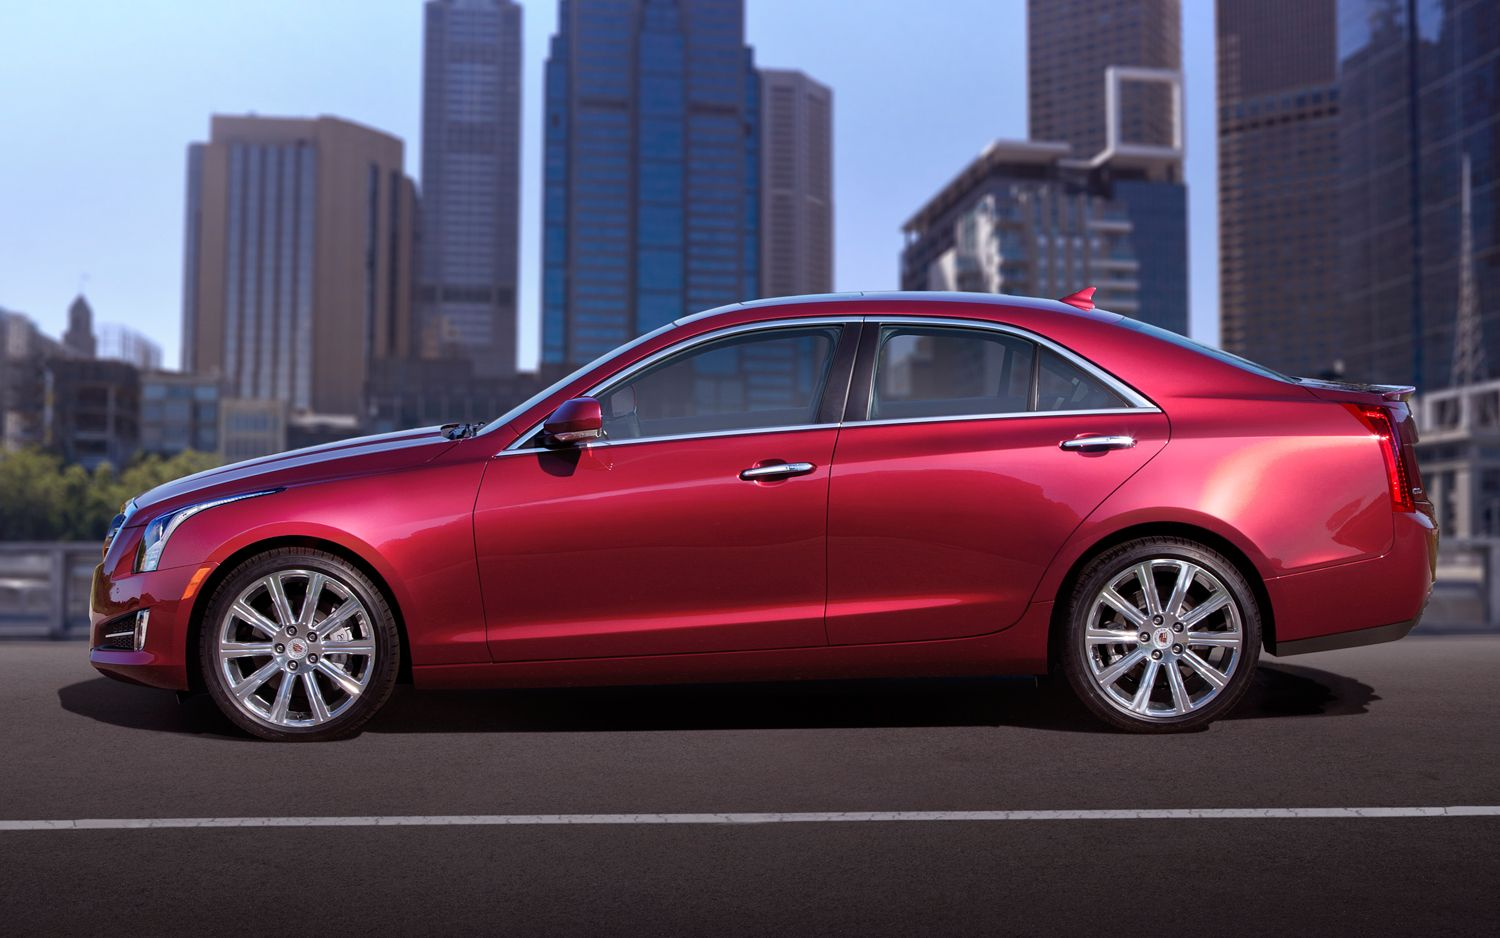 2013 cadillac ats 2 0t rated at 21 31 mpg. Black Bedroom Furniture Sets. Home Design Ideas